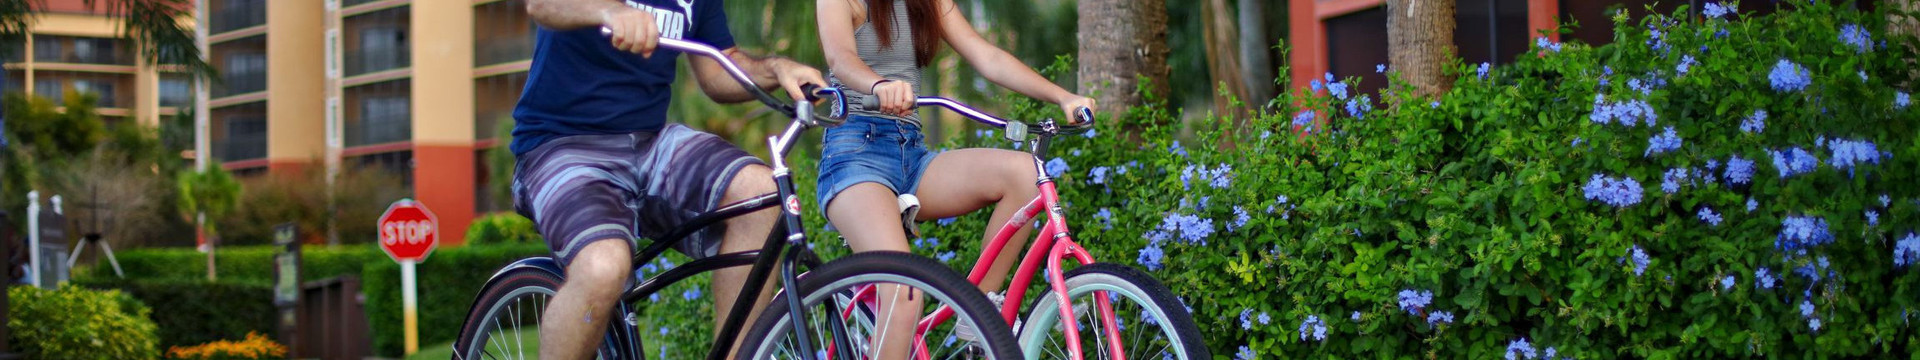 Hotel Bicycle Rental | Rent a Bike at Our Orlando Resort | Westgate Lakes Resort & Spa